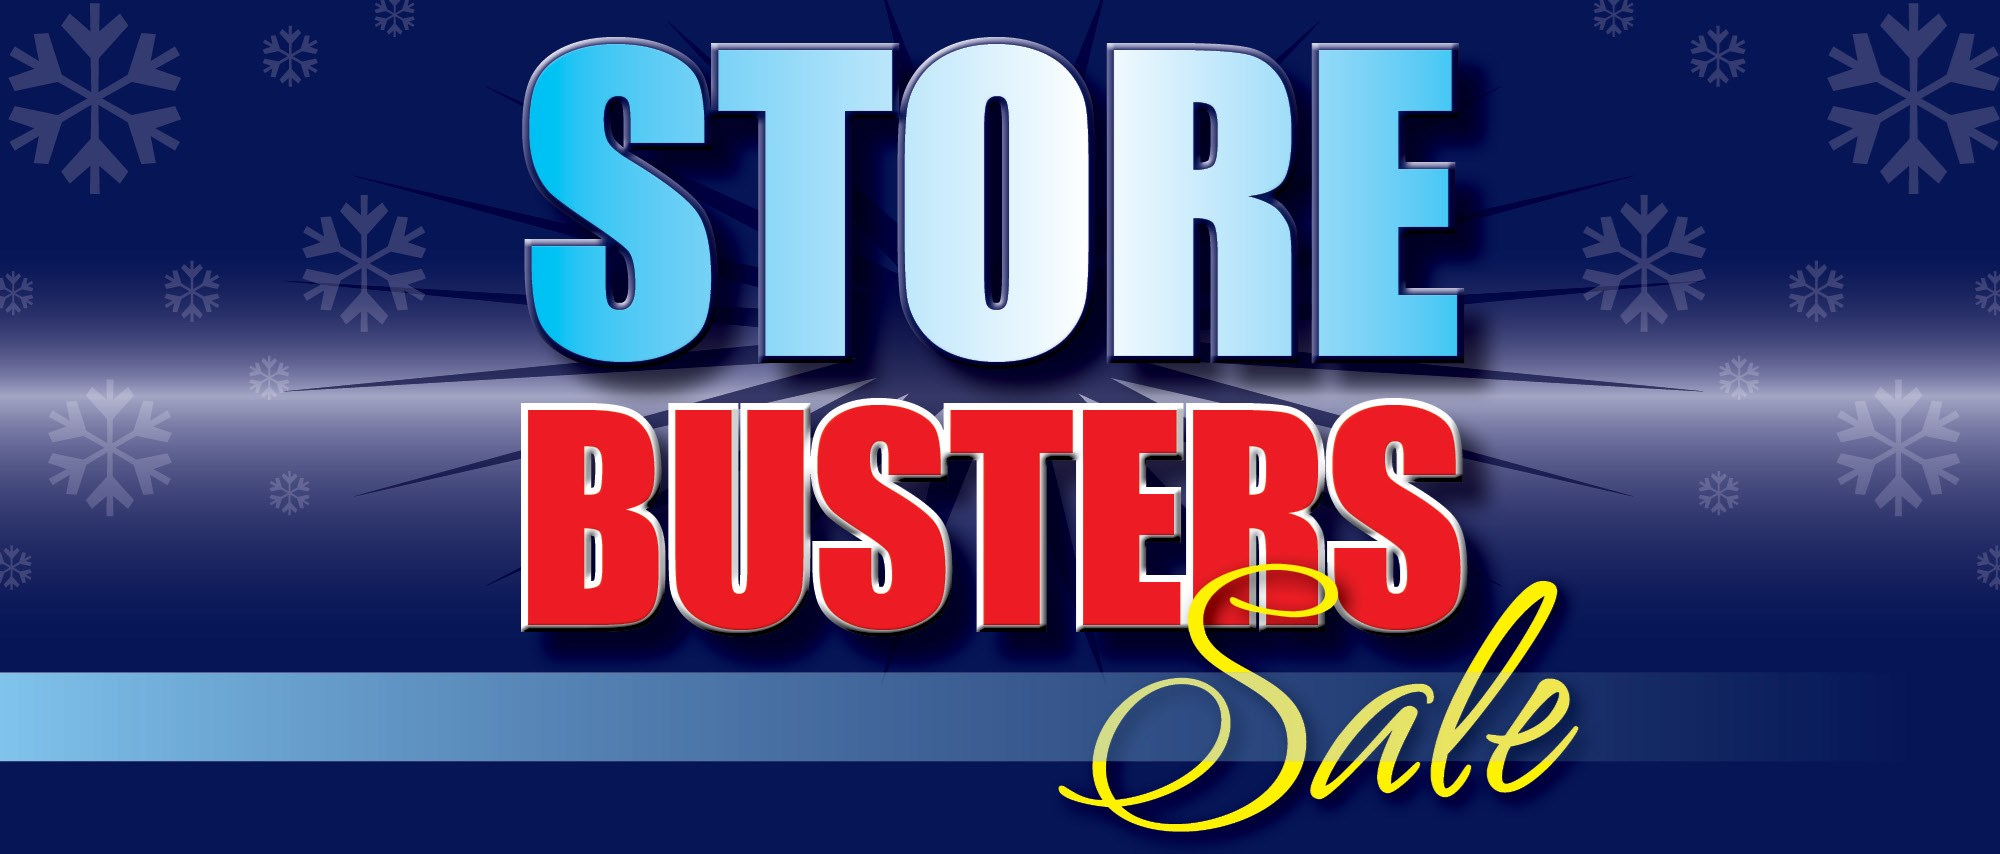 Holiday Storebusters